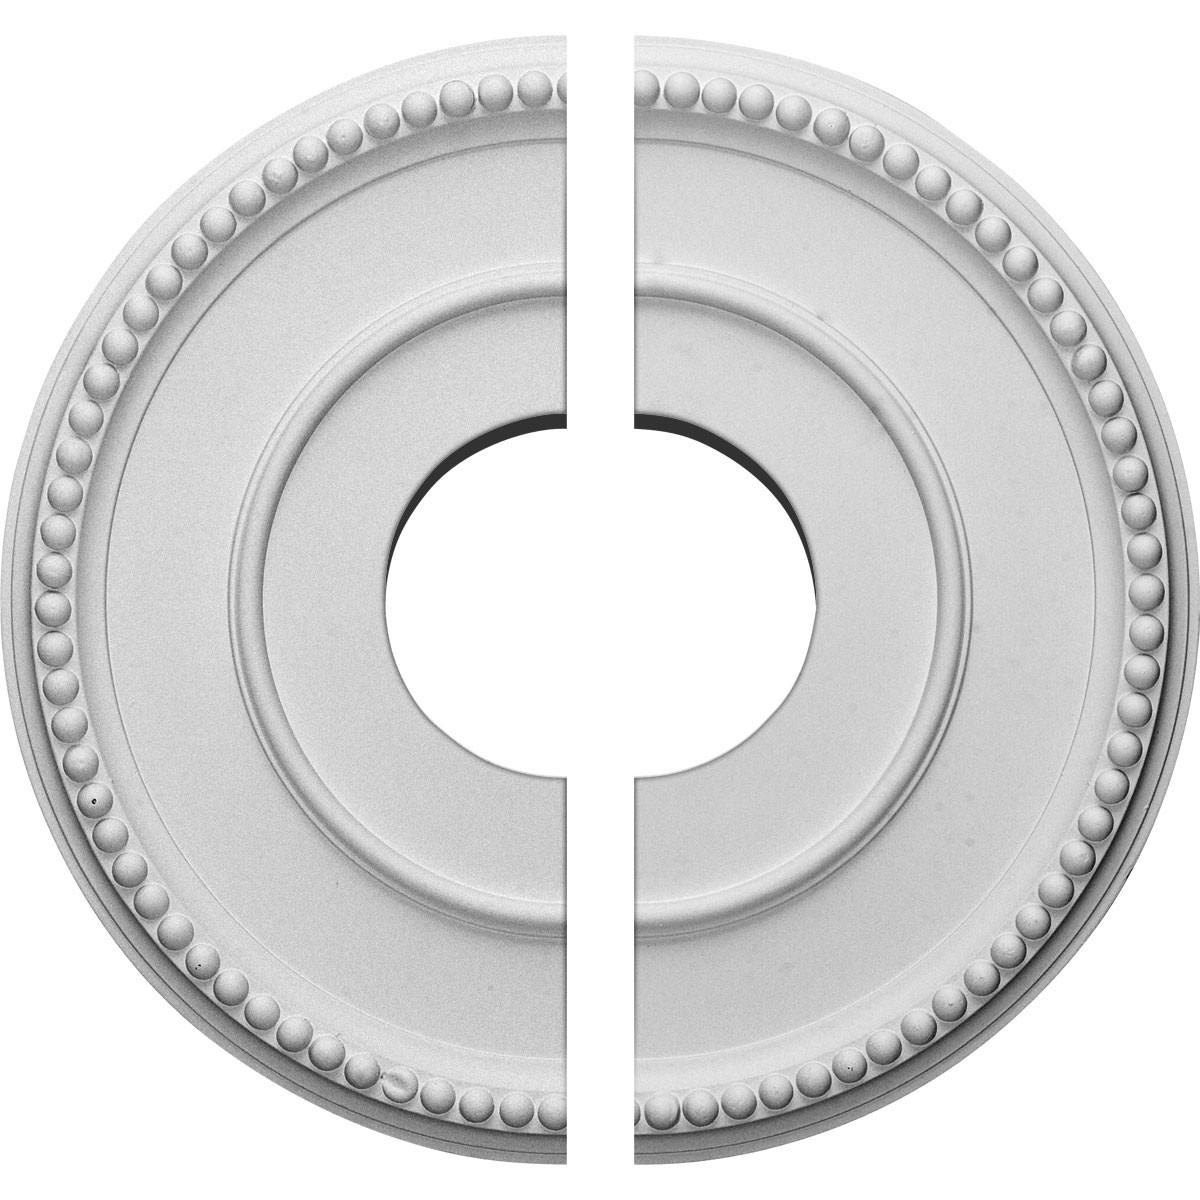 """EM-CM12BR2 - 12 1/2""""OD x 3 7/8""""ID x 3/4""""P Bradford Ceiling Medallion, Two Piece (Fits Canopies up to 6 5/8"""")"""